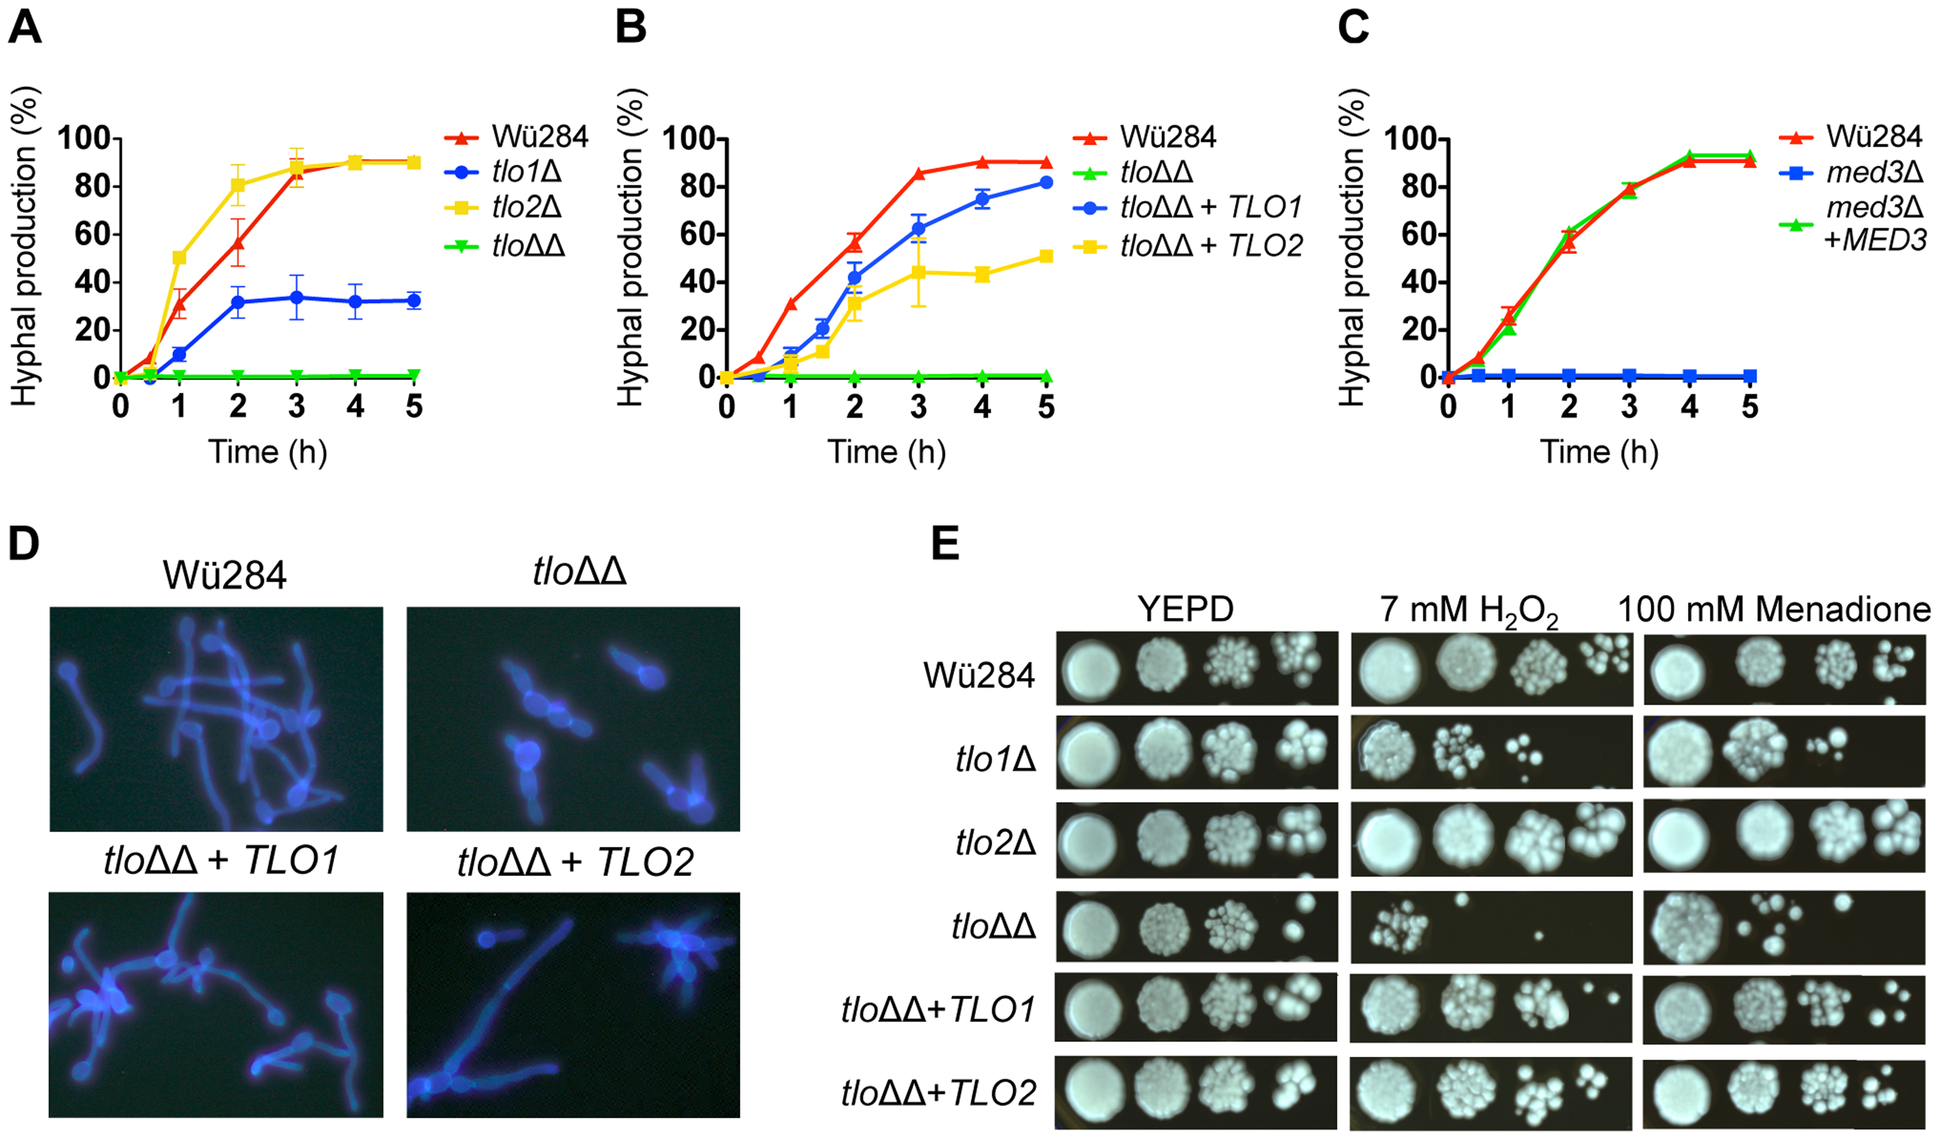 Phenotypic analysis of <i>C. dubliniensis tloΔ</i> and <i>med3</i>Δ mutants.